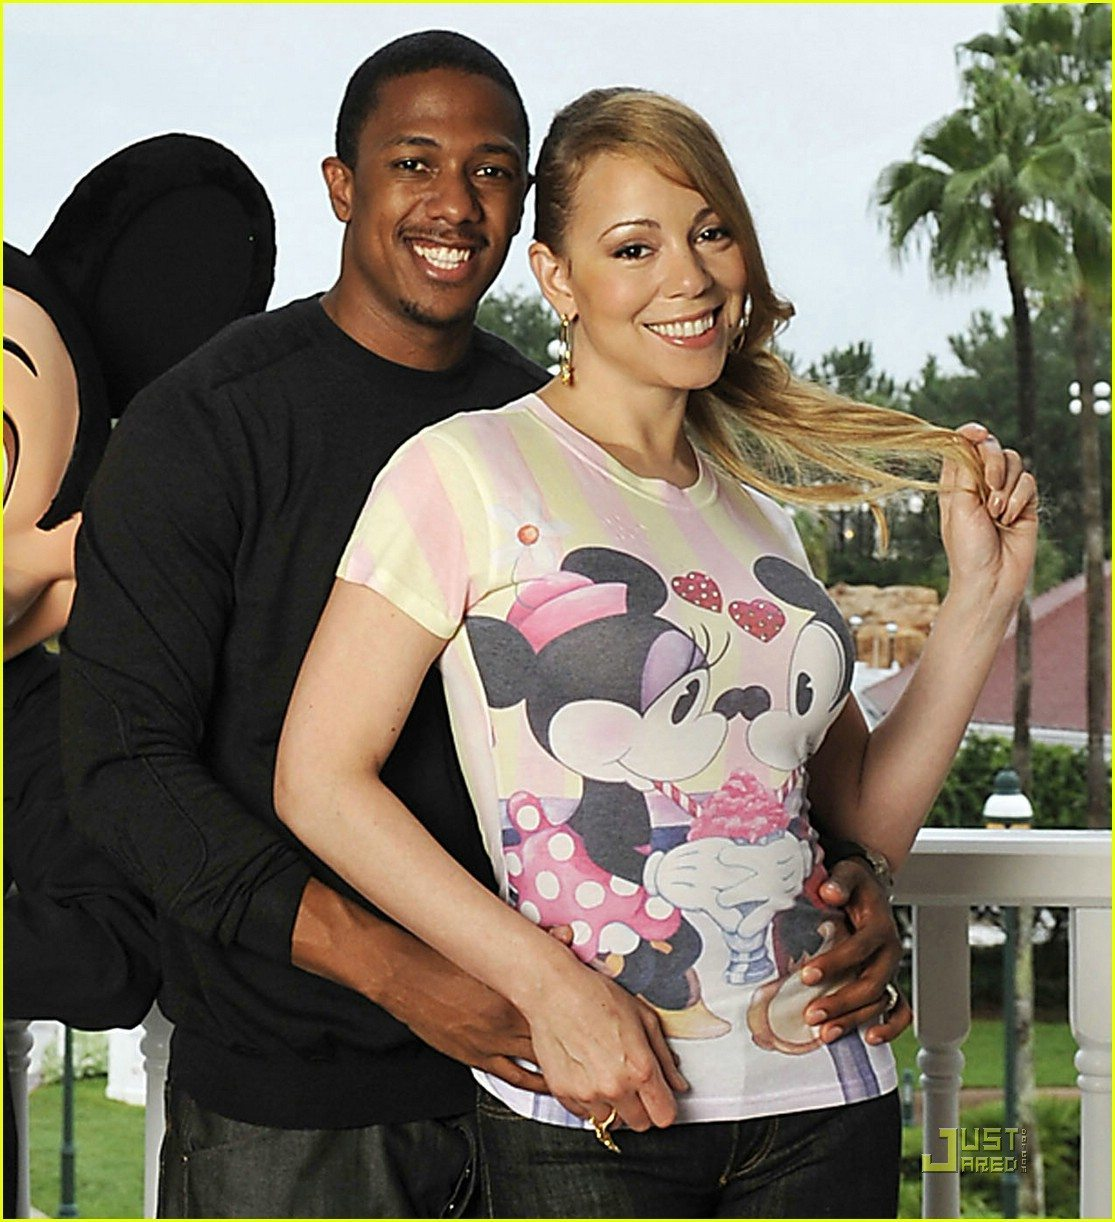 Mariah Carey And Nick Cannon On The Beach